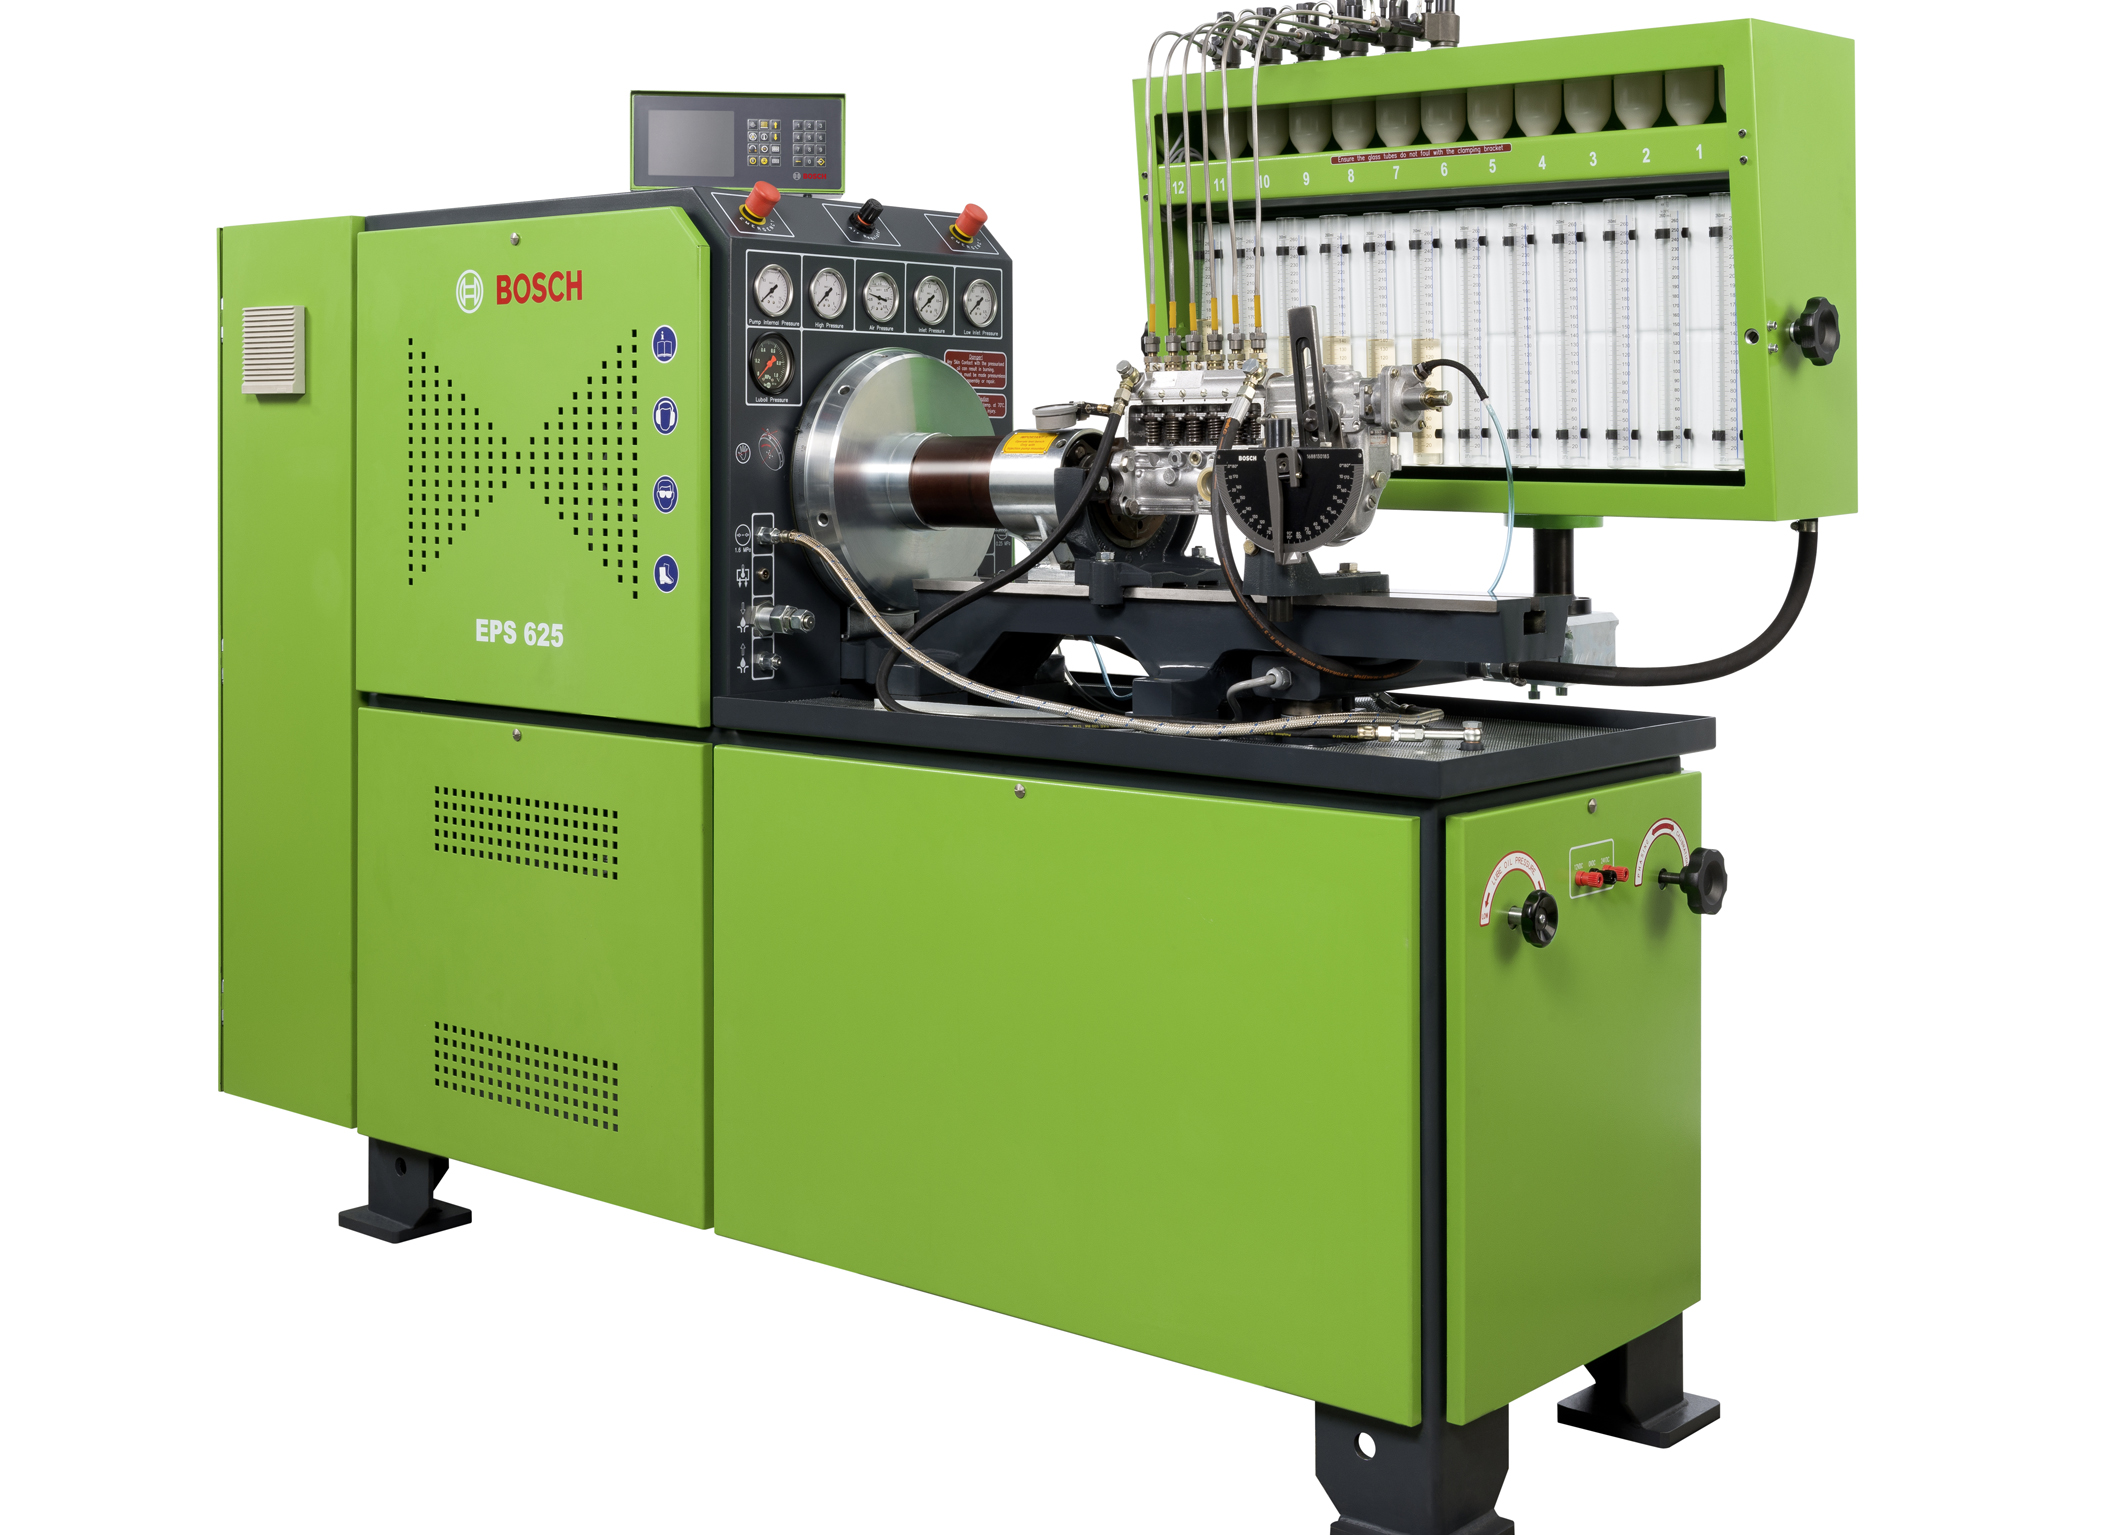 New EPS 625 Injection Pump Test Bench Adds to the Bosch Diesel